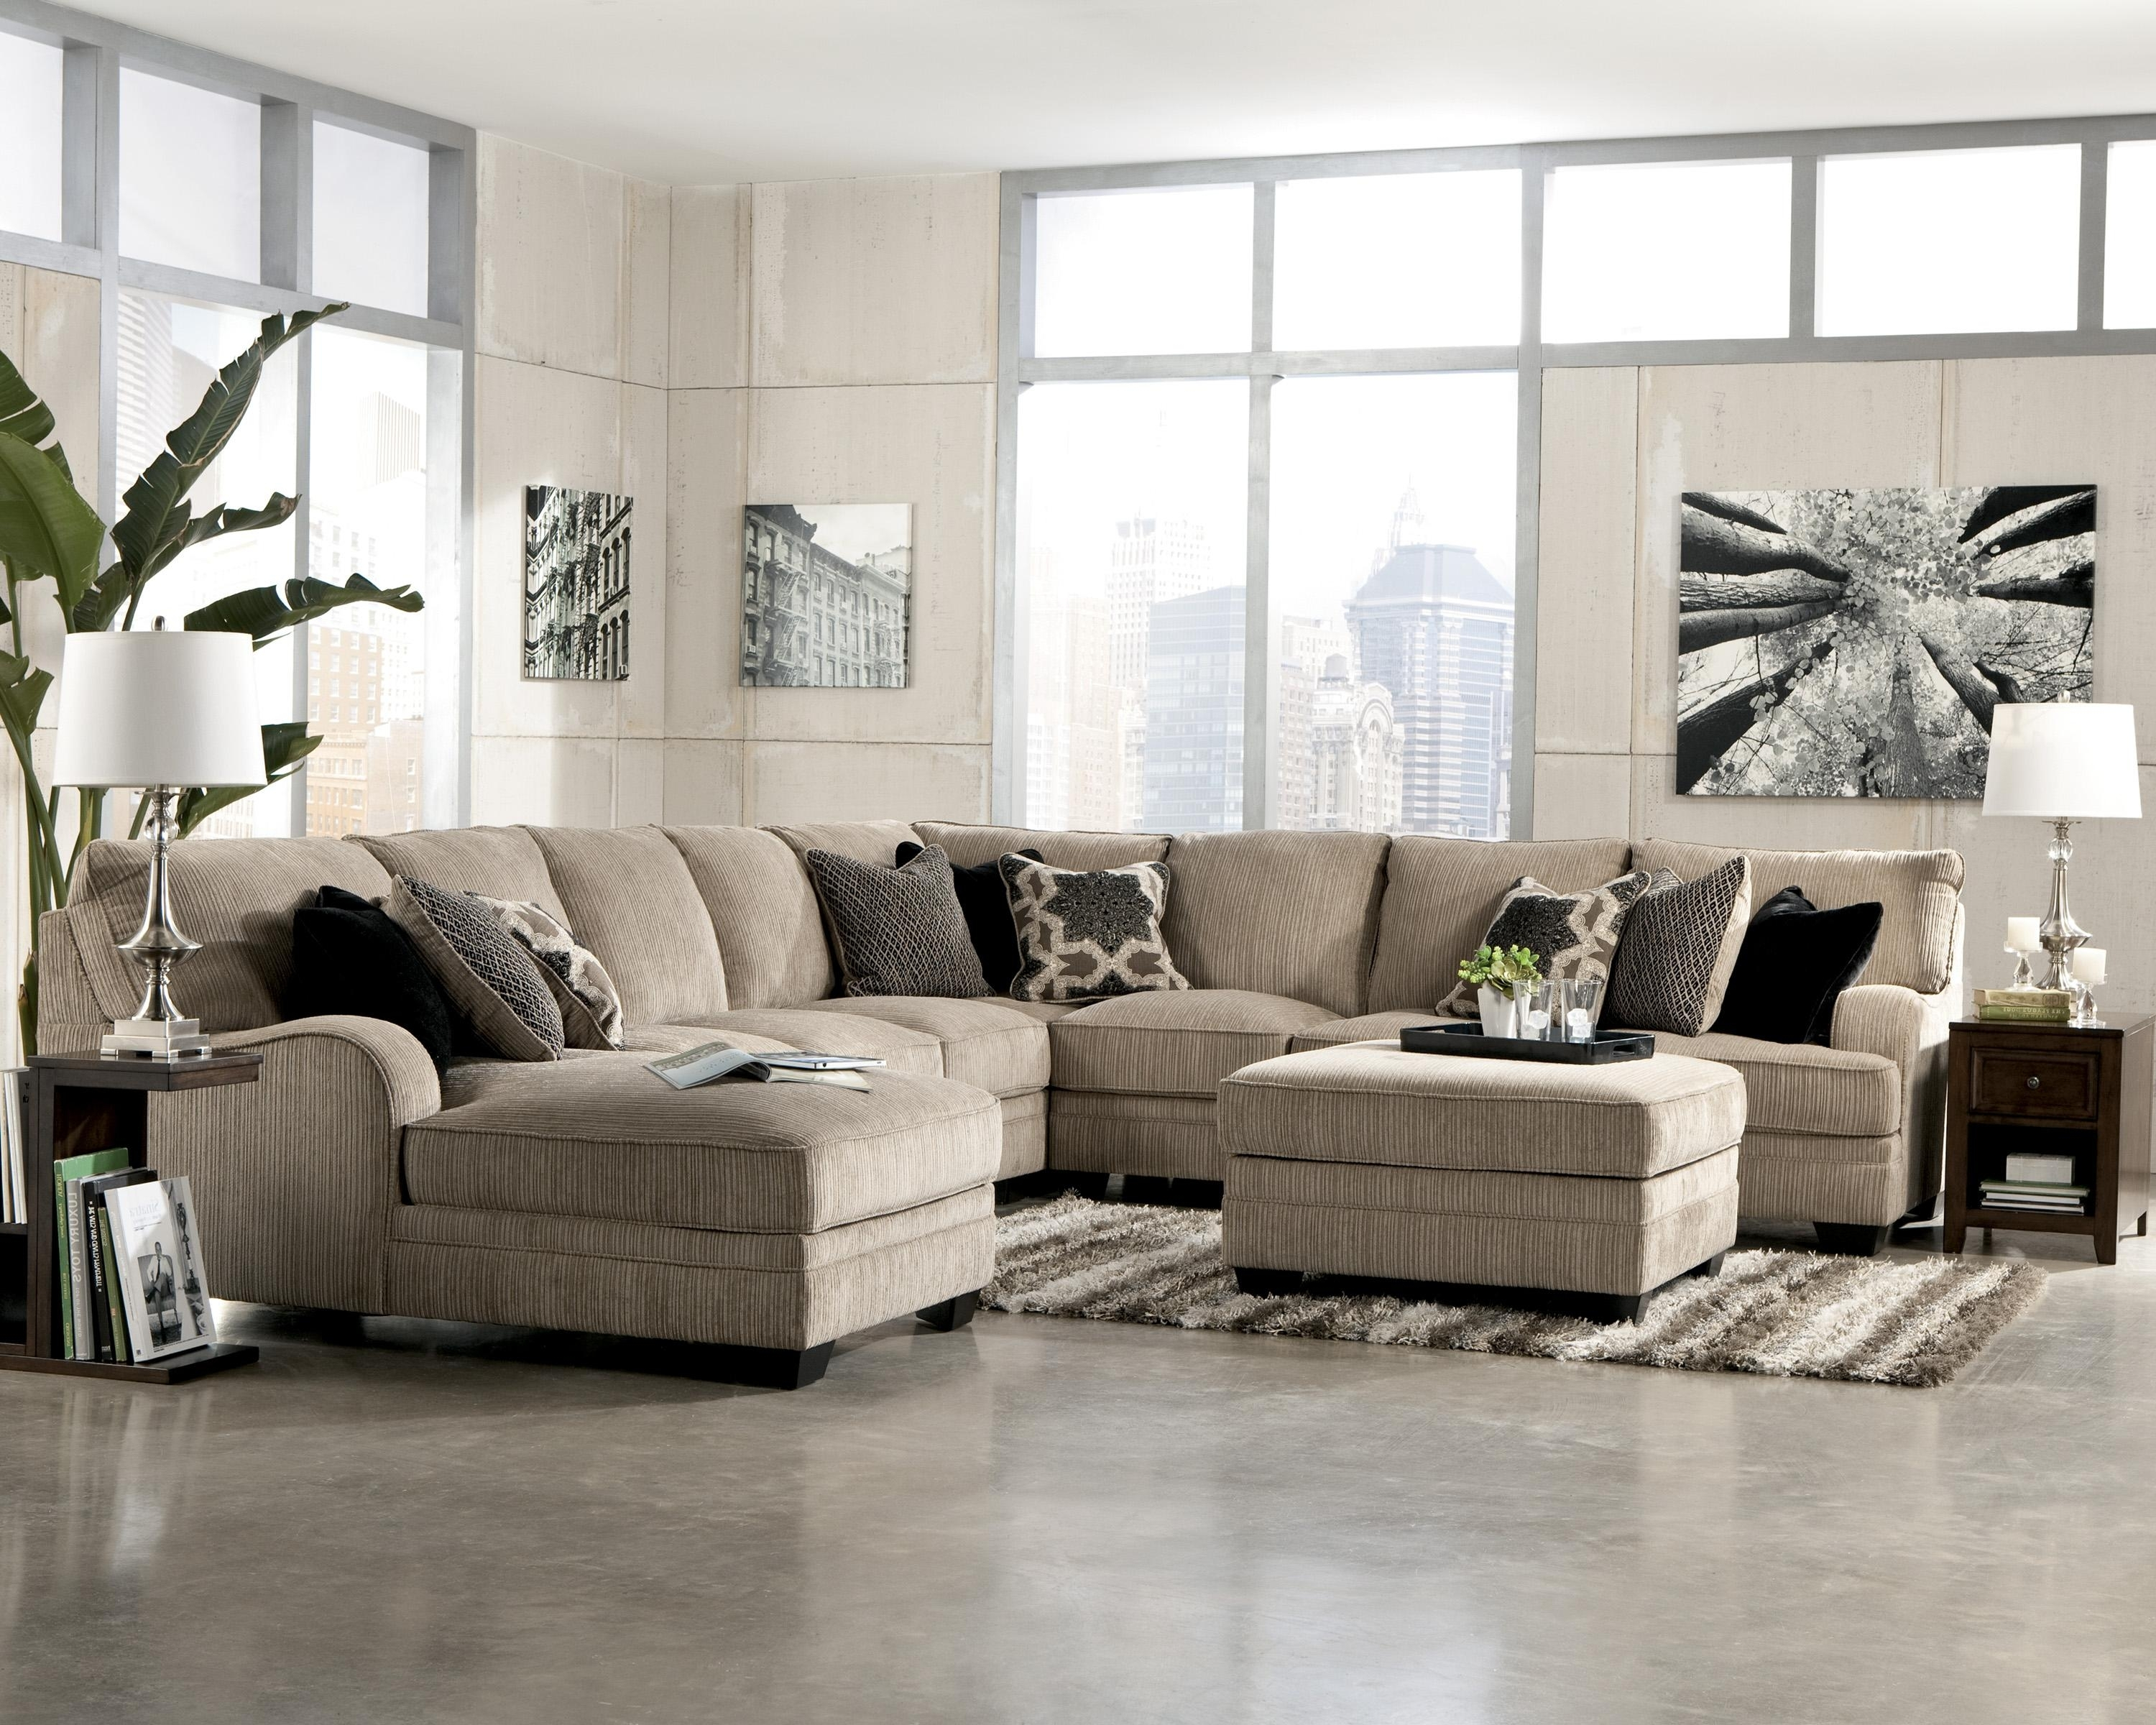 Katisha – Platinum 5 Piece Sectional Sofa With Left Chaise For Jackson Ms Sectional Sofas (View 5 of 10)